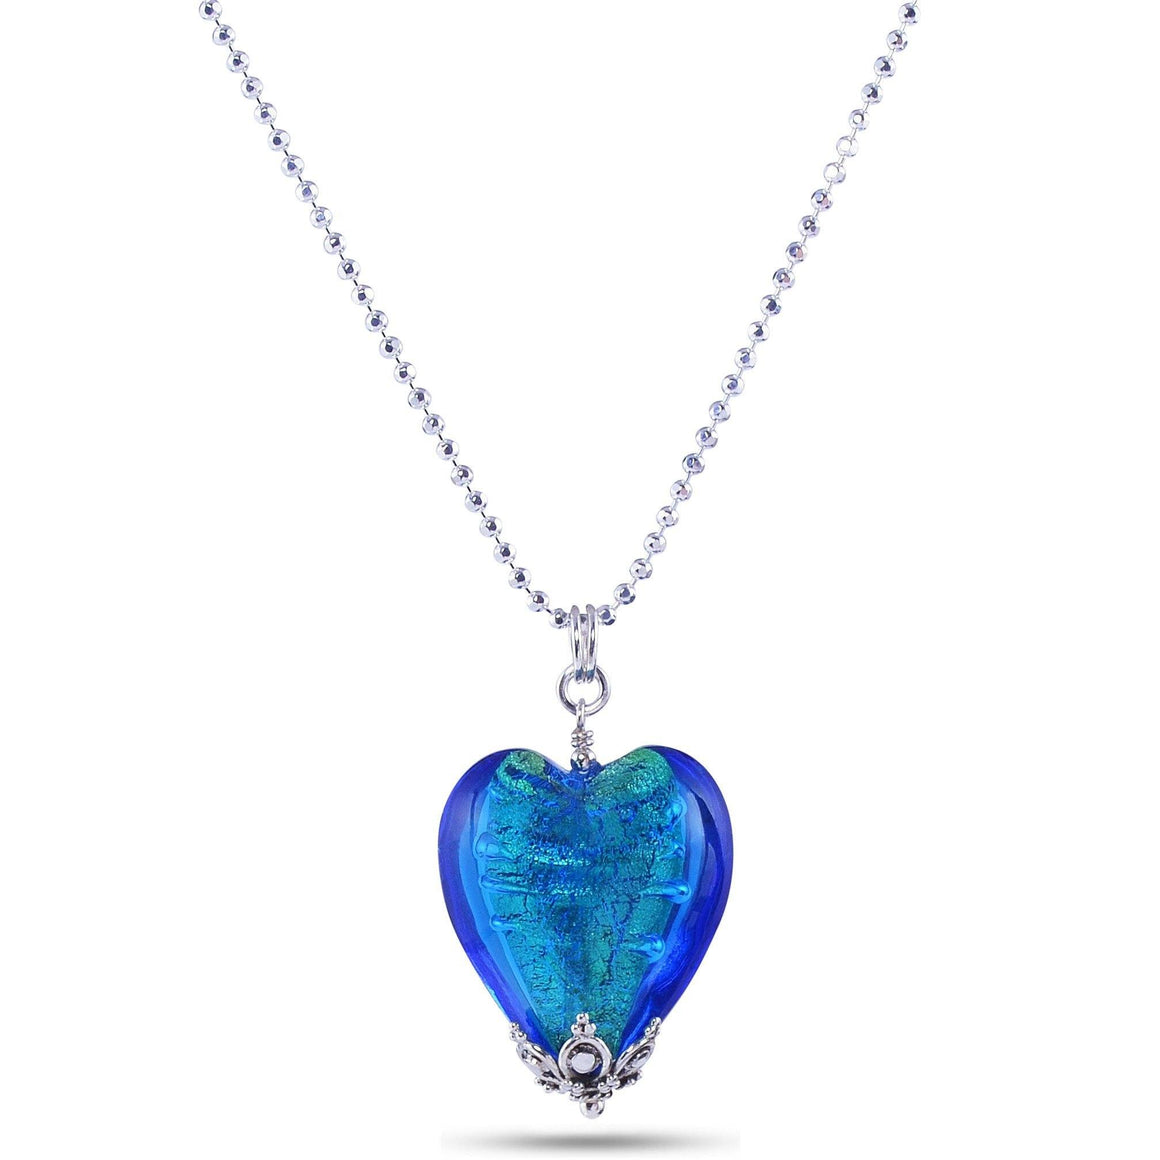 Blue Murano Glass Heart Necklace